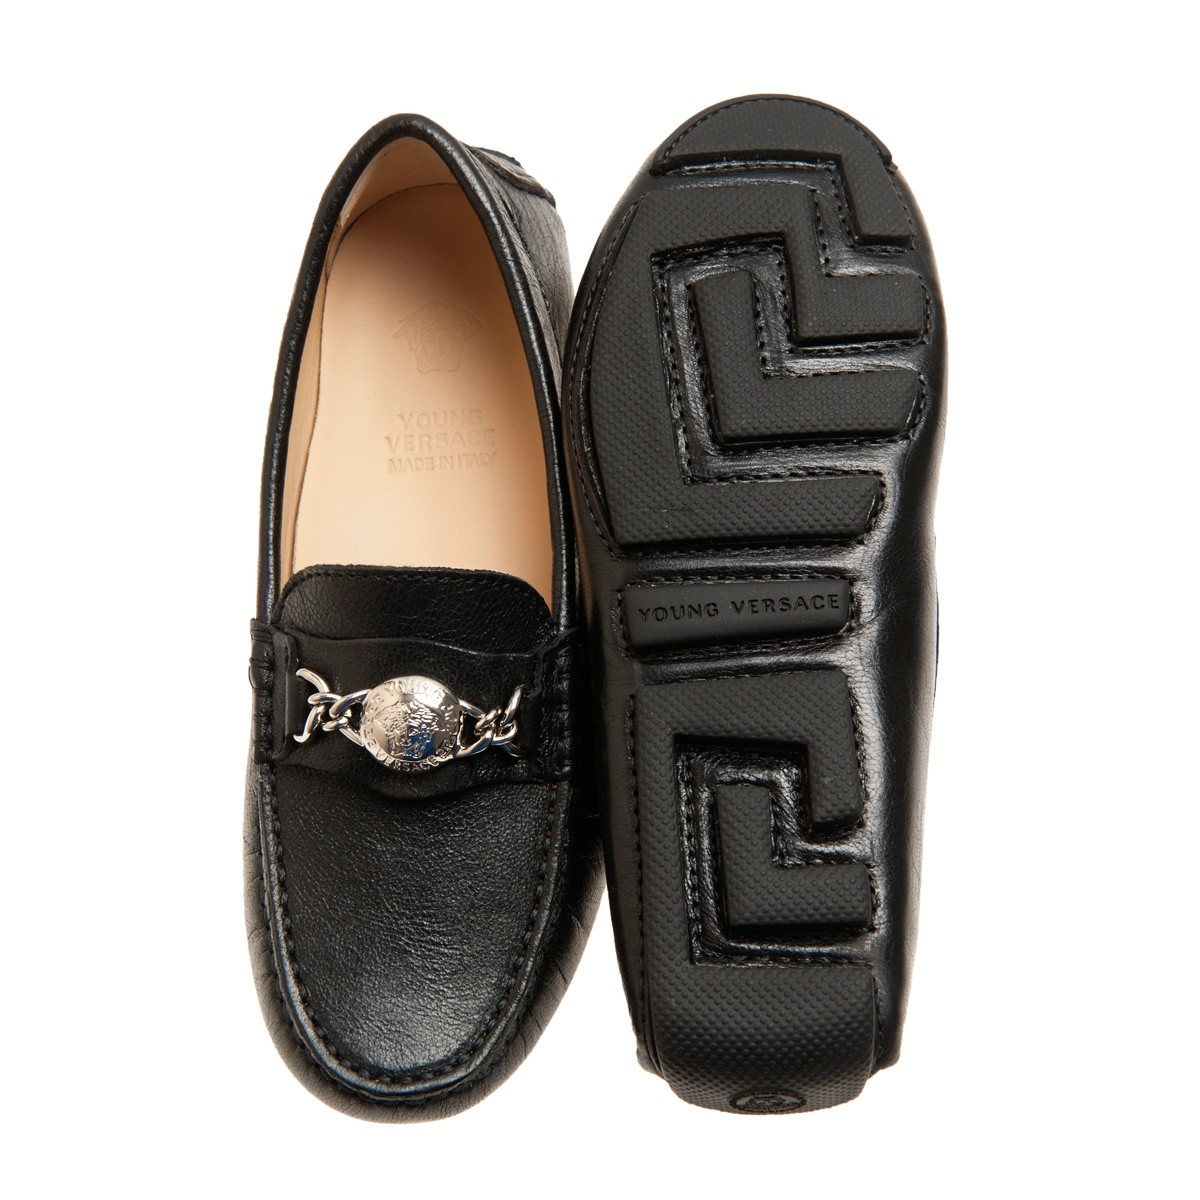 44b5baf42 Boys black leather loafers by Young Versace